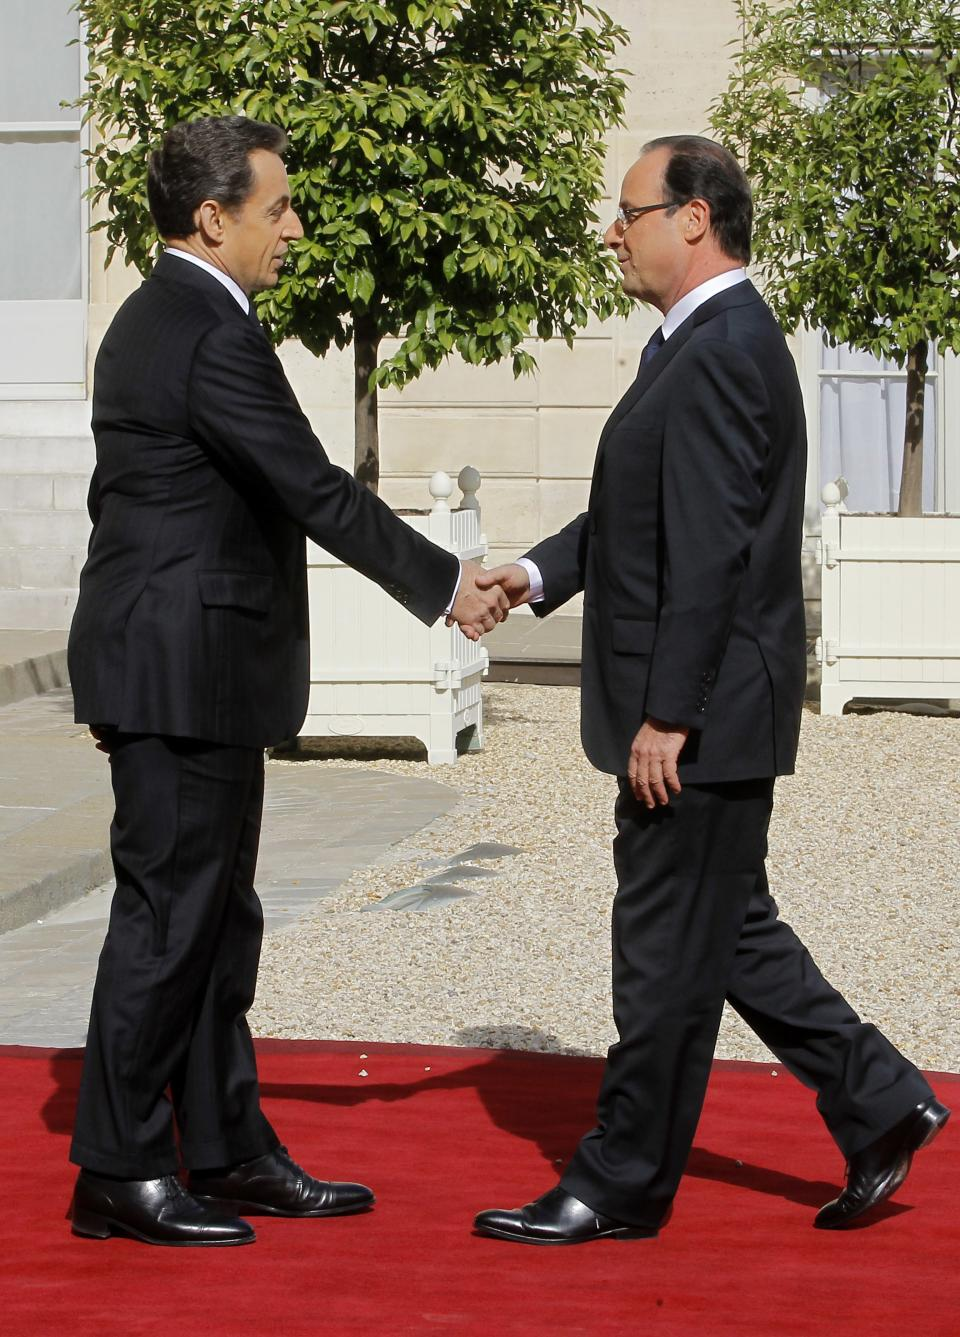 French President-elect Francois Hollande, right, shakes hands with outgoing President Nicolas Sarkozy before the handover ceremony, Tuesday, May 15, 2012 at the Elysee Palace in Paris.  (AP Photo/Jacques Brinon)